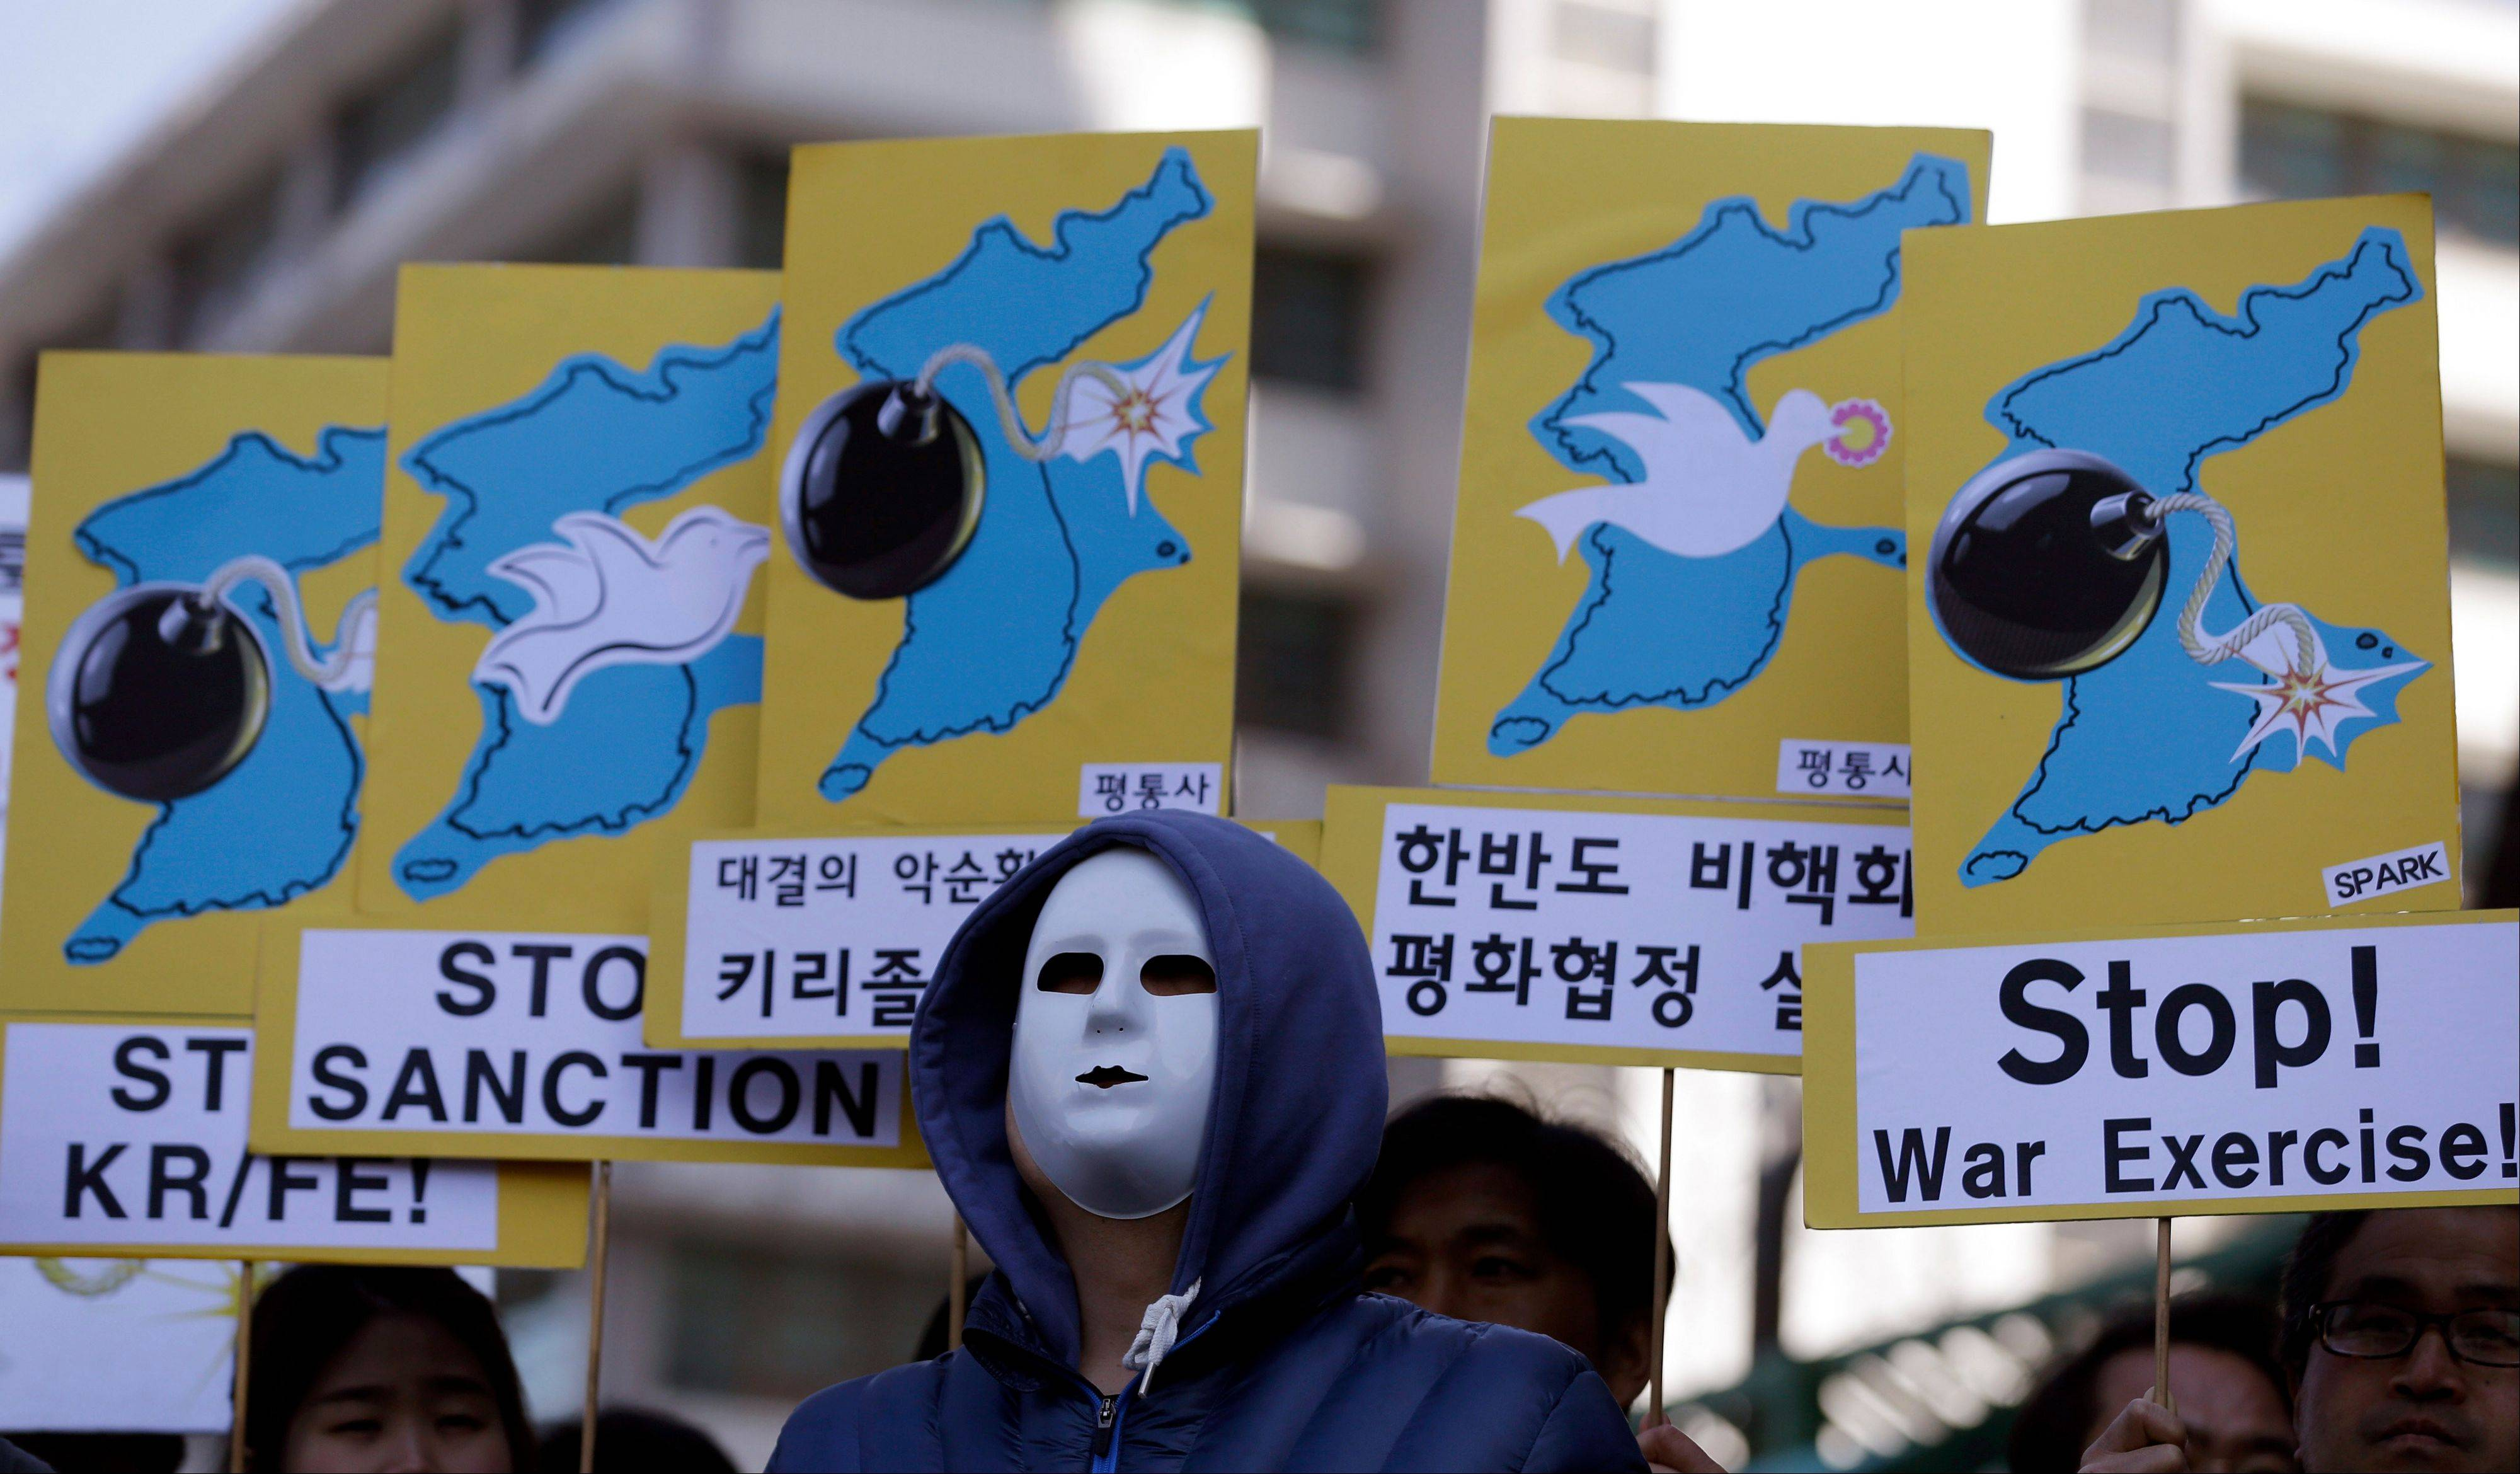 South Korean protesters wearing masks hold placards during a rally denouncing the annual joint military exercises, dubbed Key Resolve and Foal Eagle, between South Korea and the U.S., near the U.S. Embassy in Seoul, South Korea, Monday.